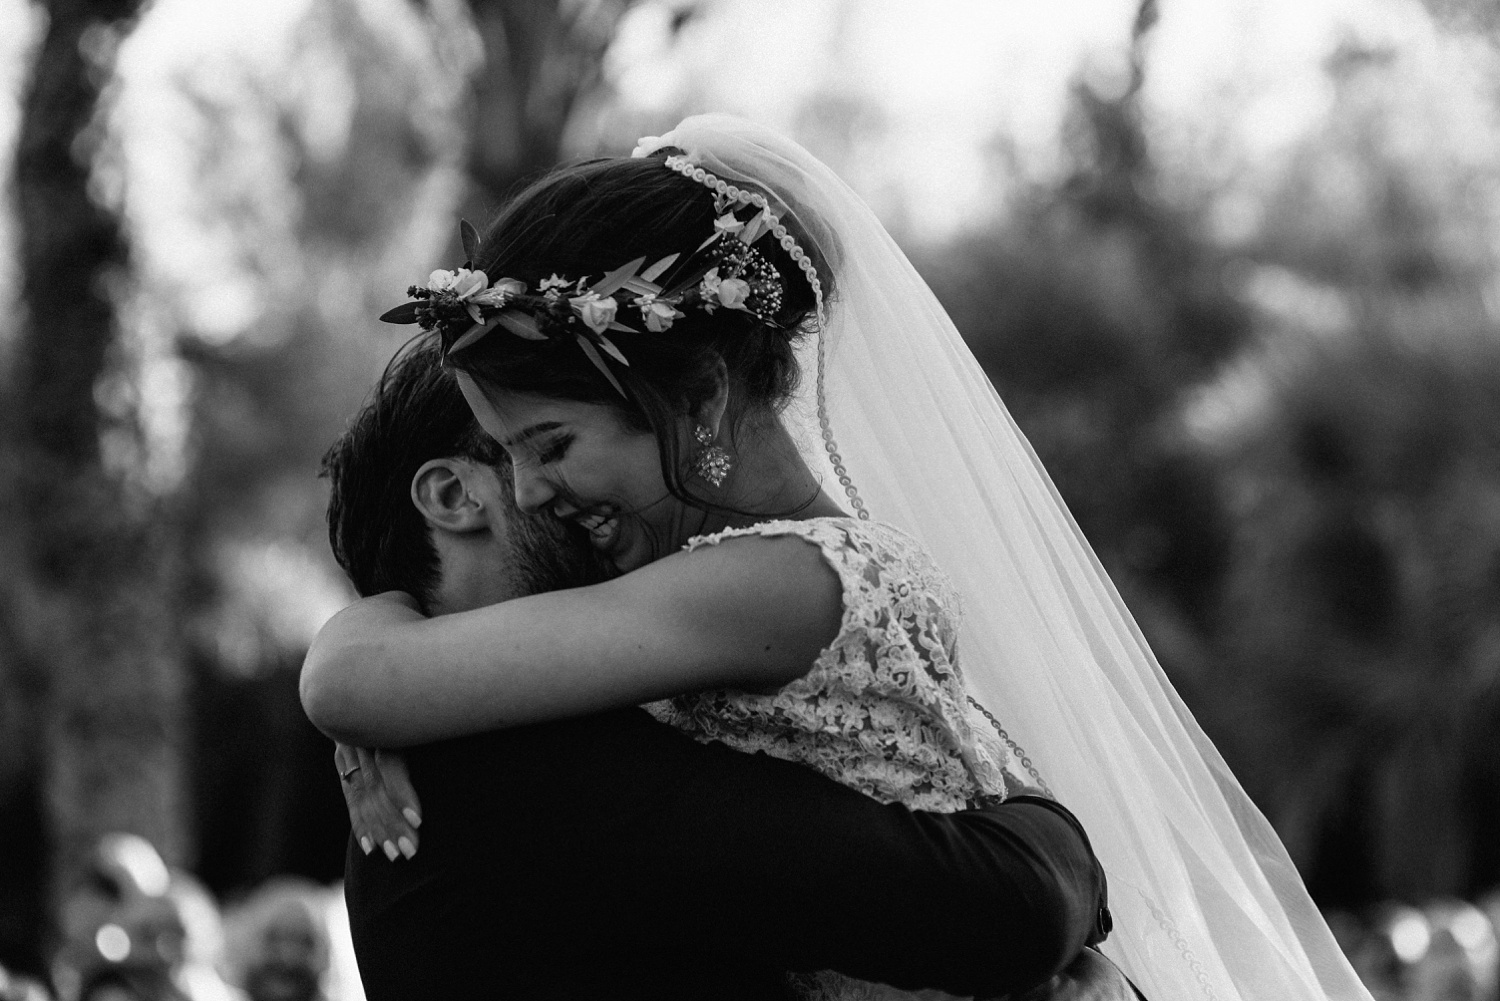 Marrakech destination wedding photograper - Alex and Dounia_0038.jpg